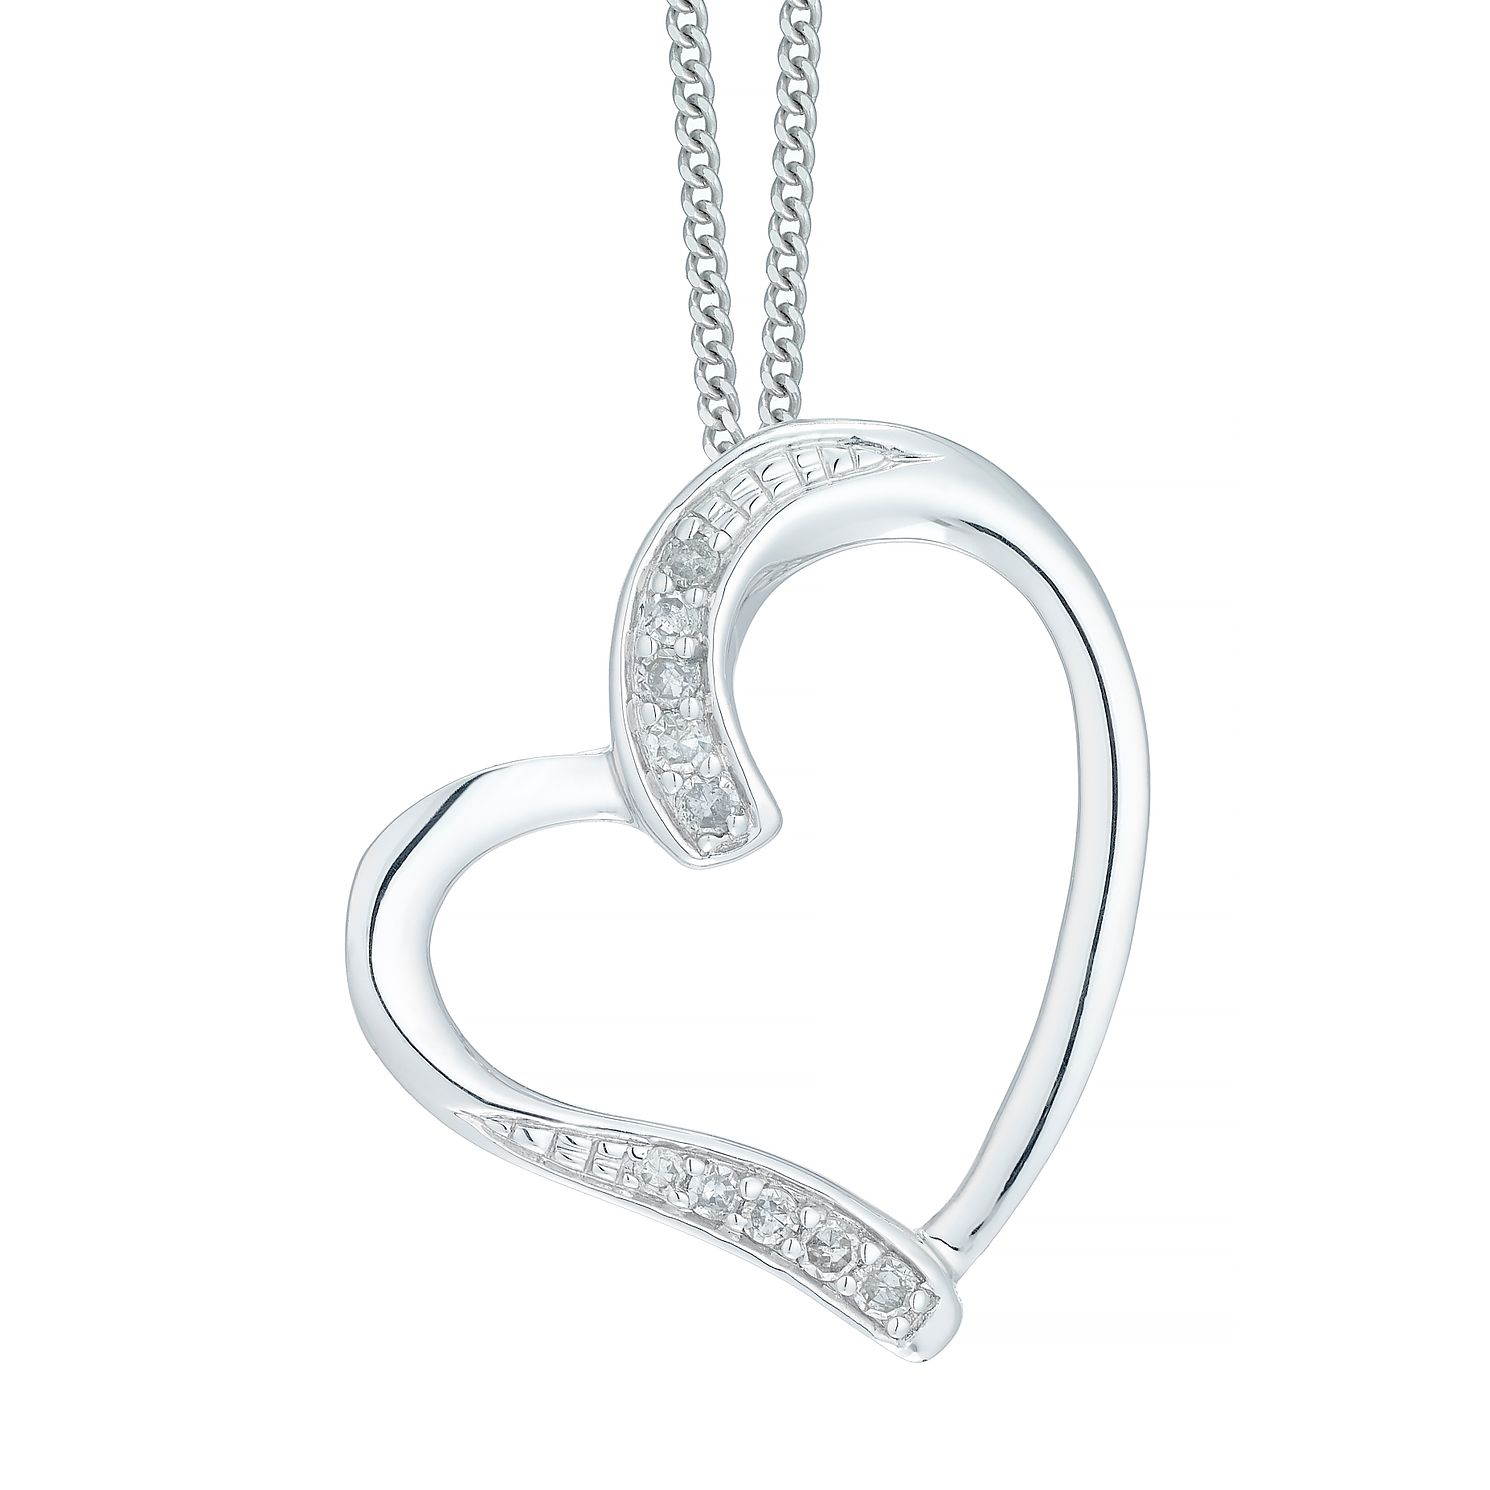 links and jewellery amp gb en diamond of sterling hires essentials necklace pave silver london heart